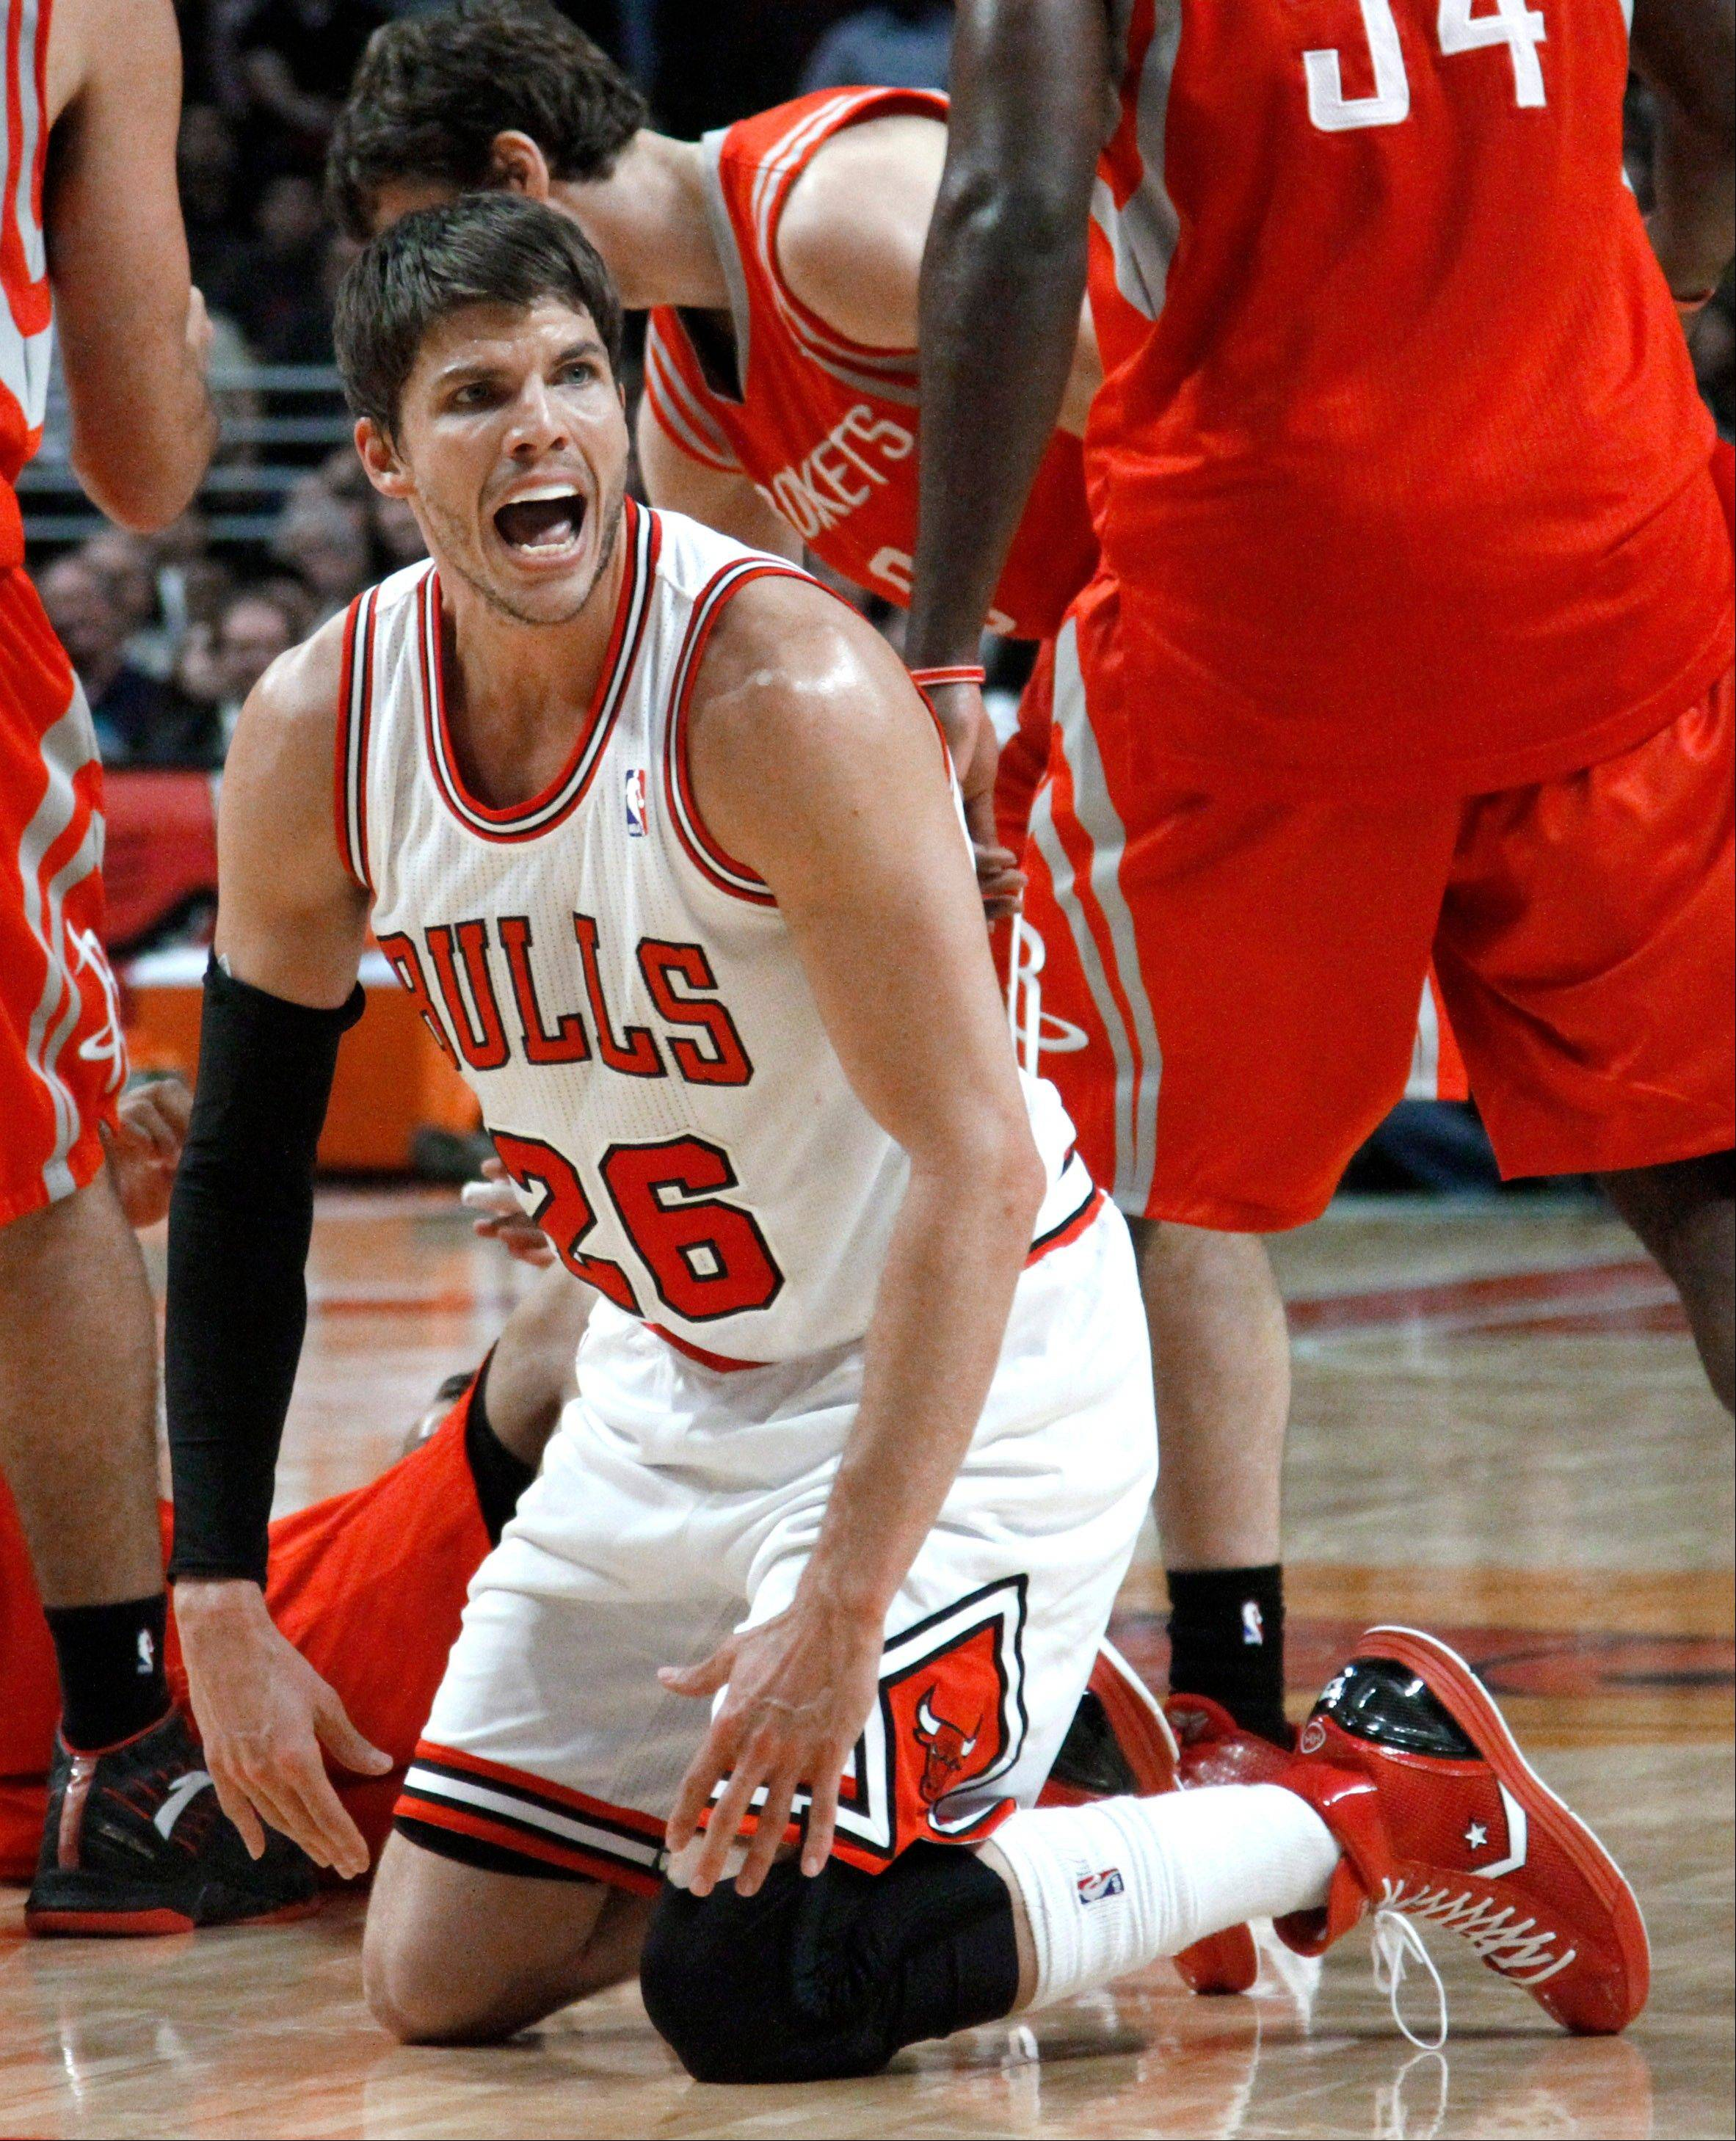 Kyle Korver's future with the Bulls remains up in the air.